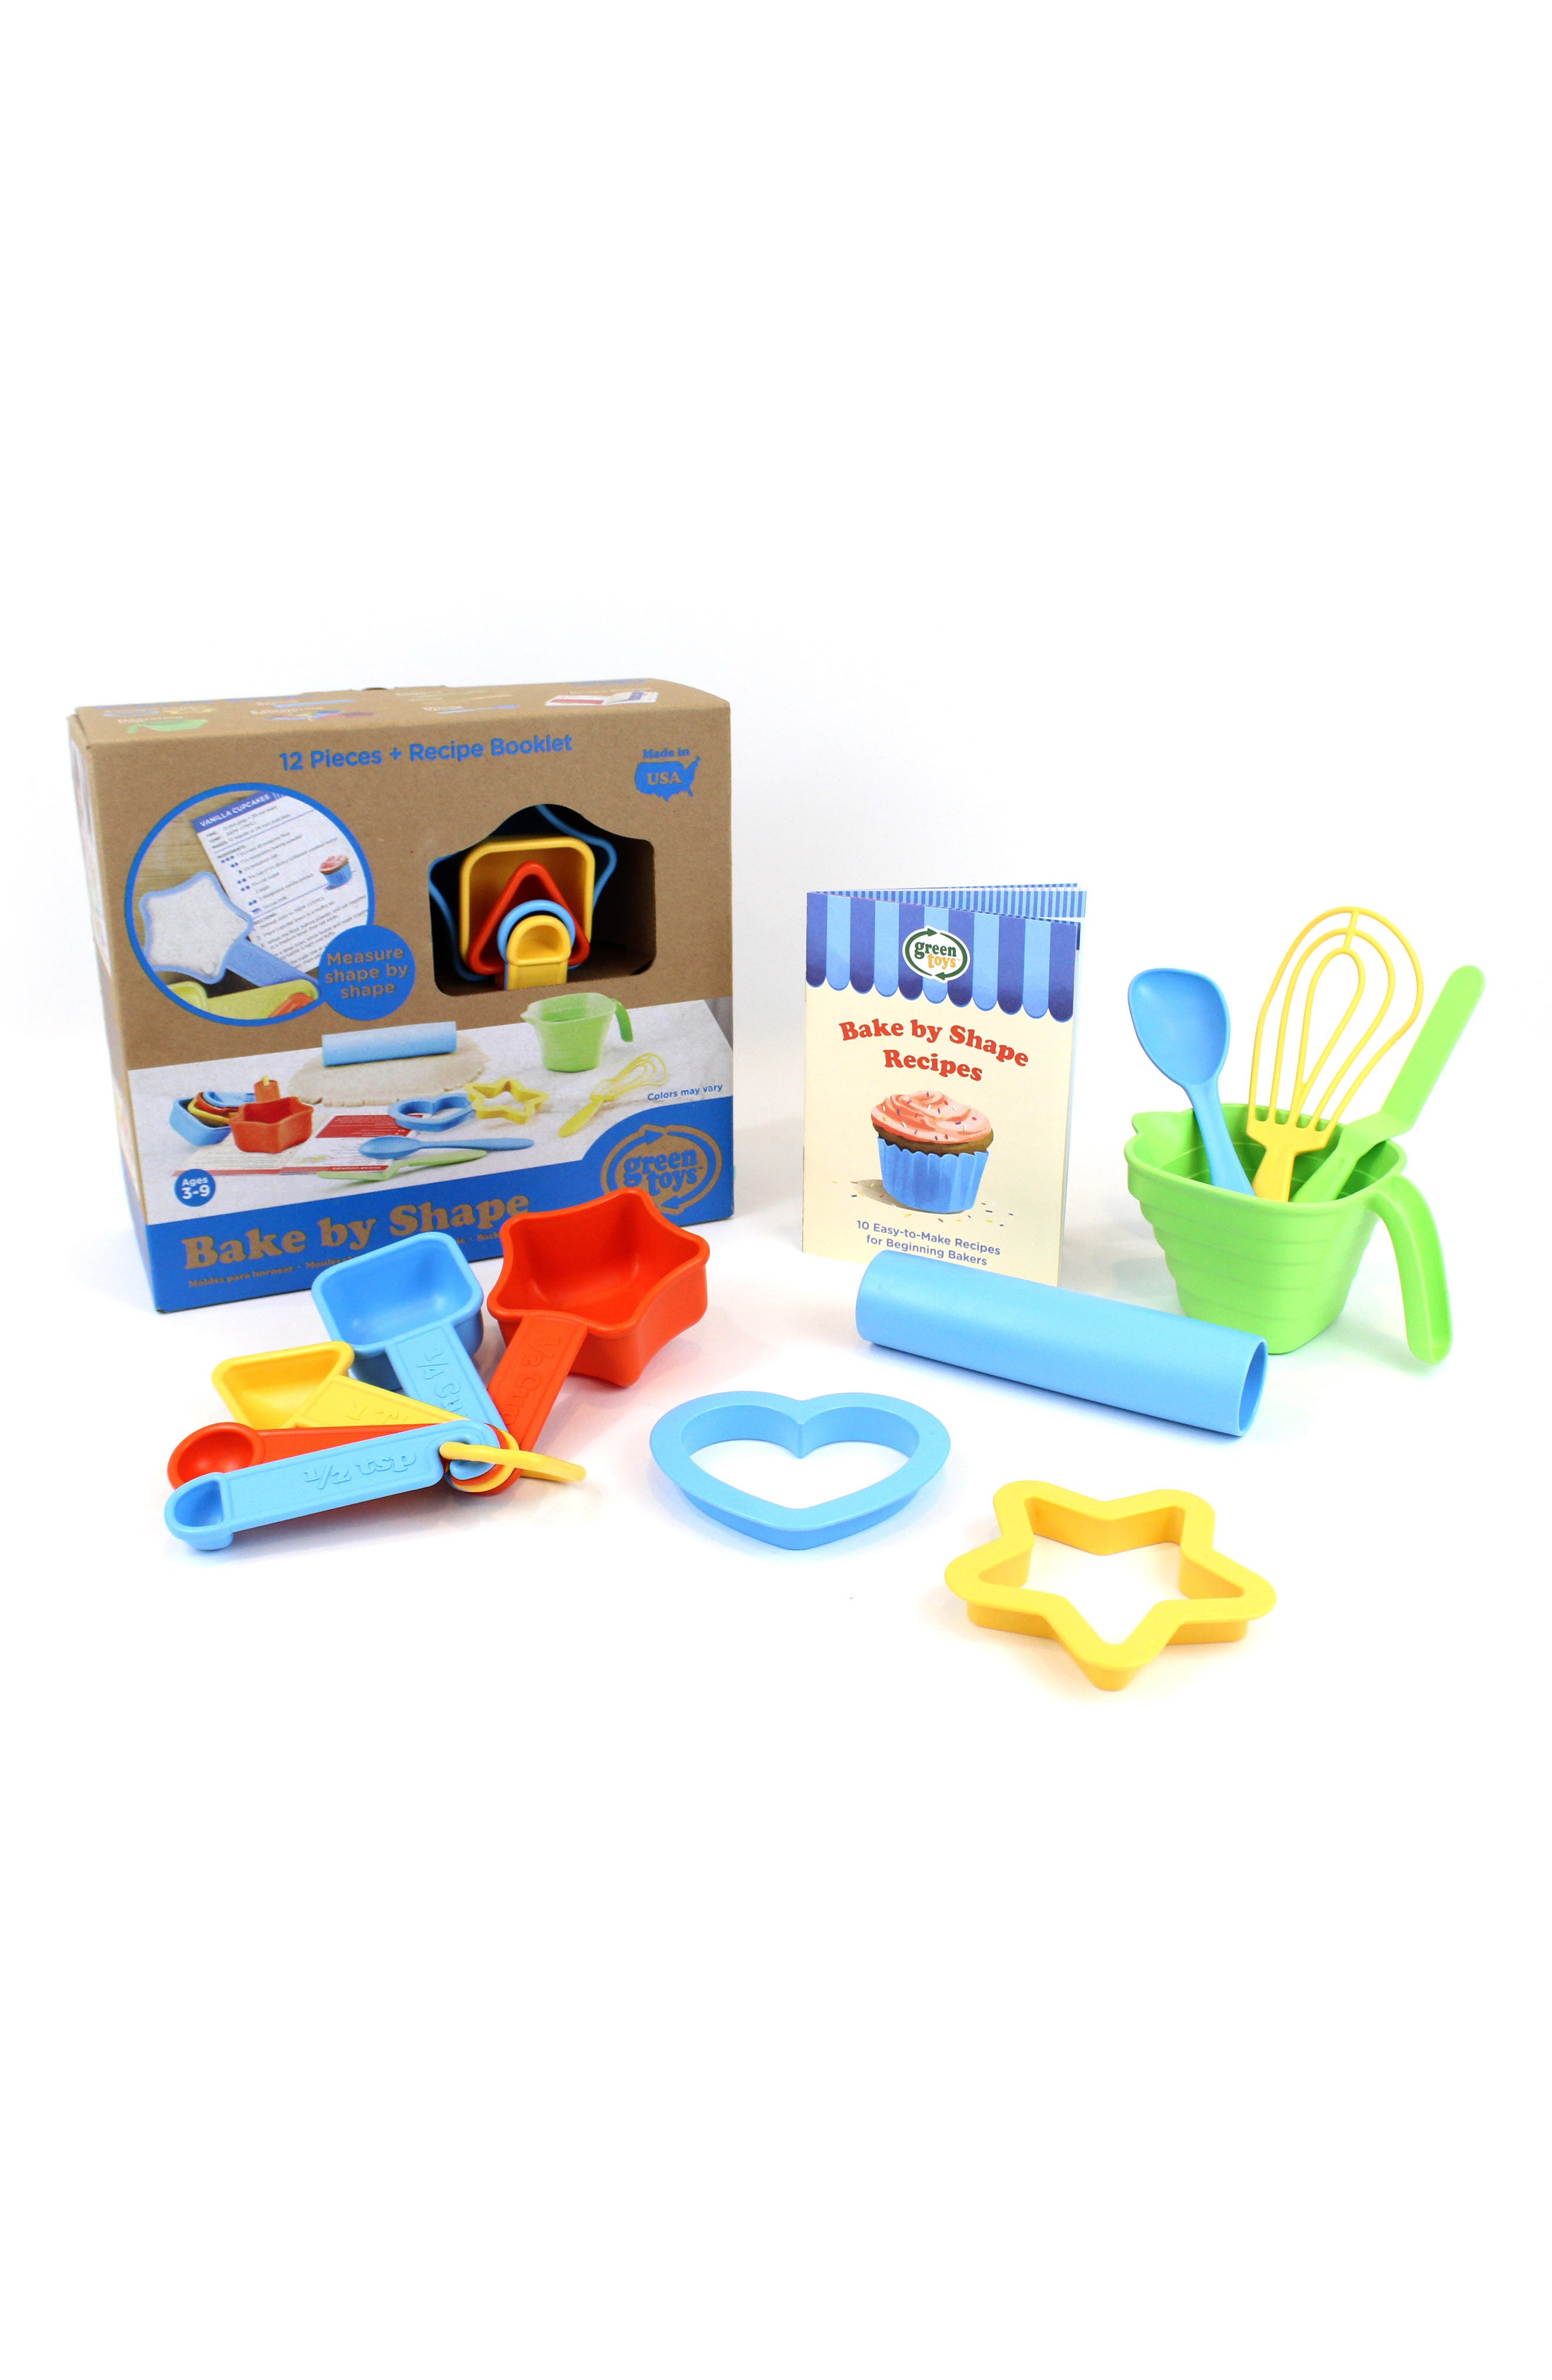 Alternate Image 1 Selected - Green Toys 12-Piece Bake by Shape Baking Set